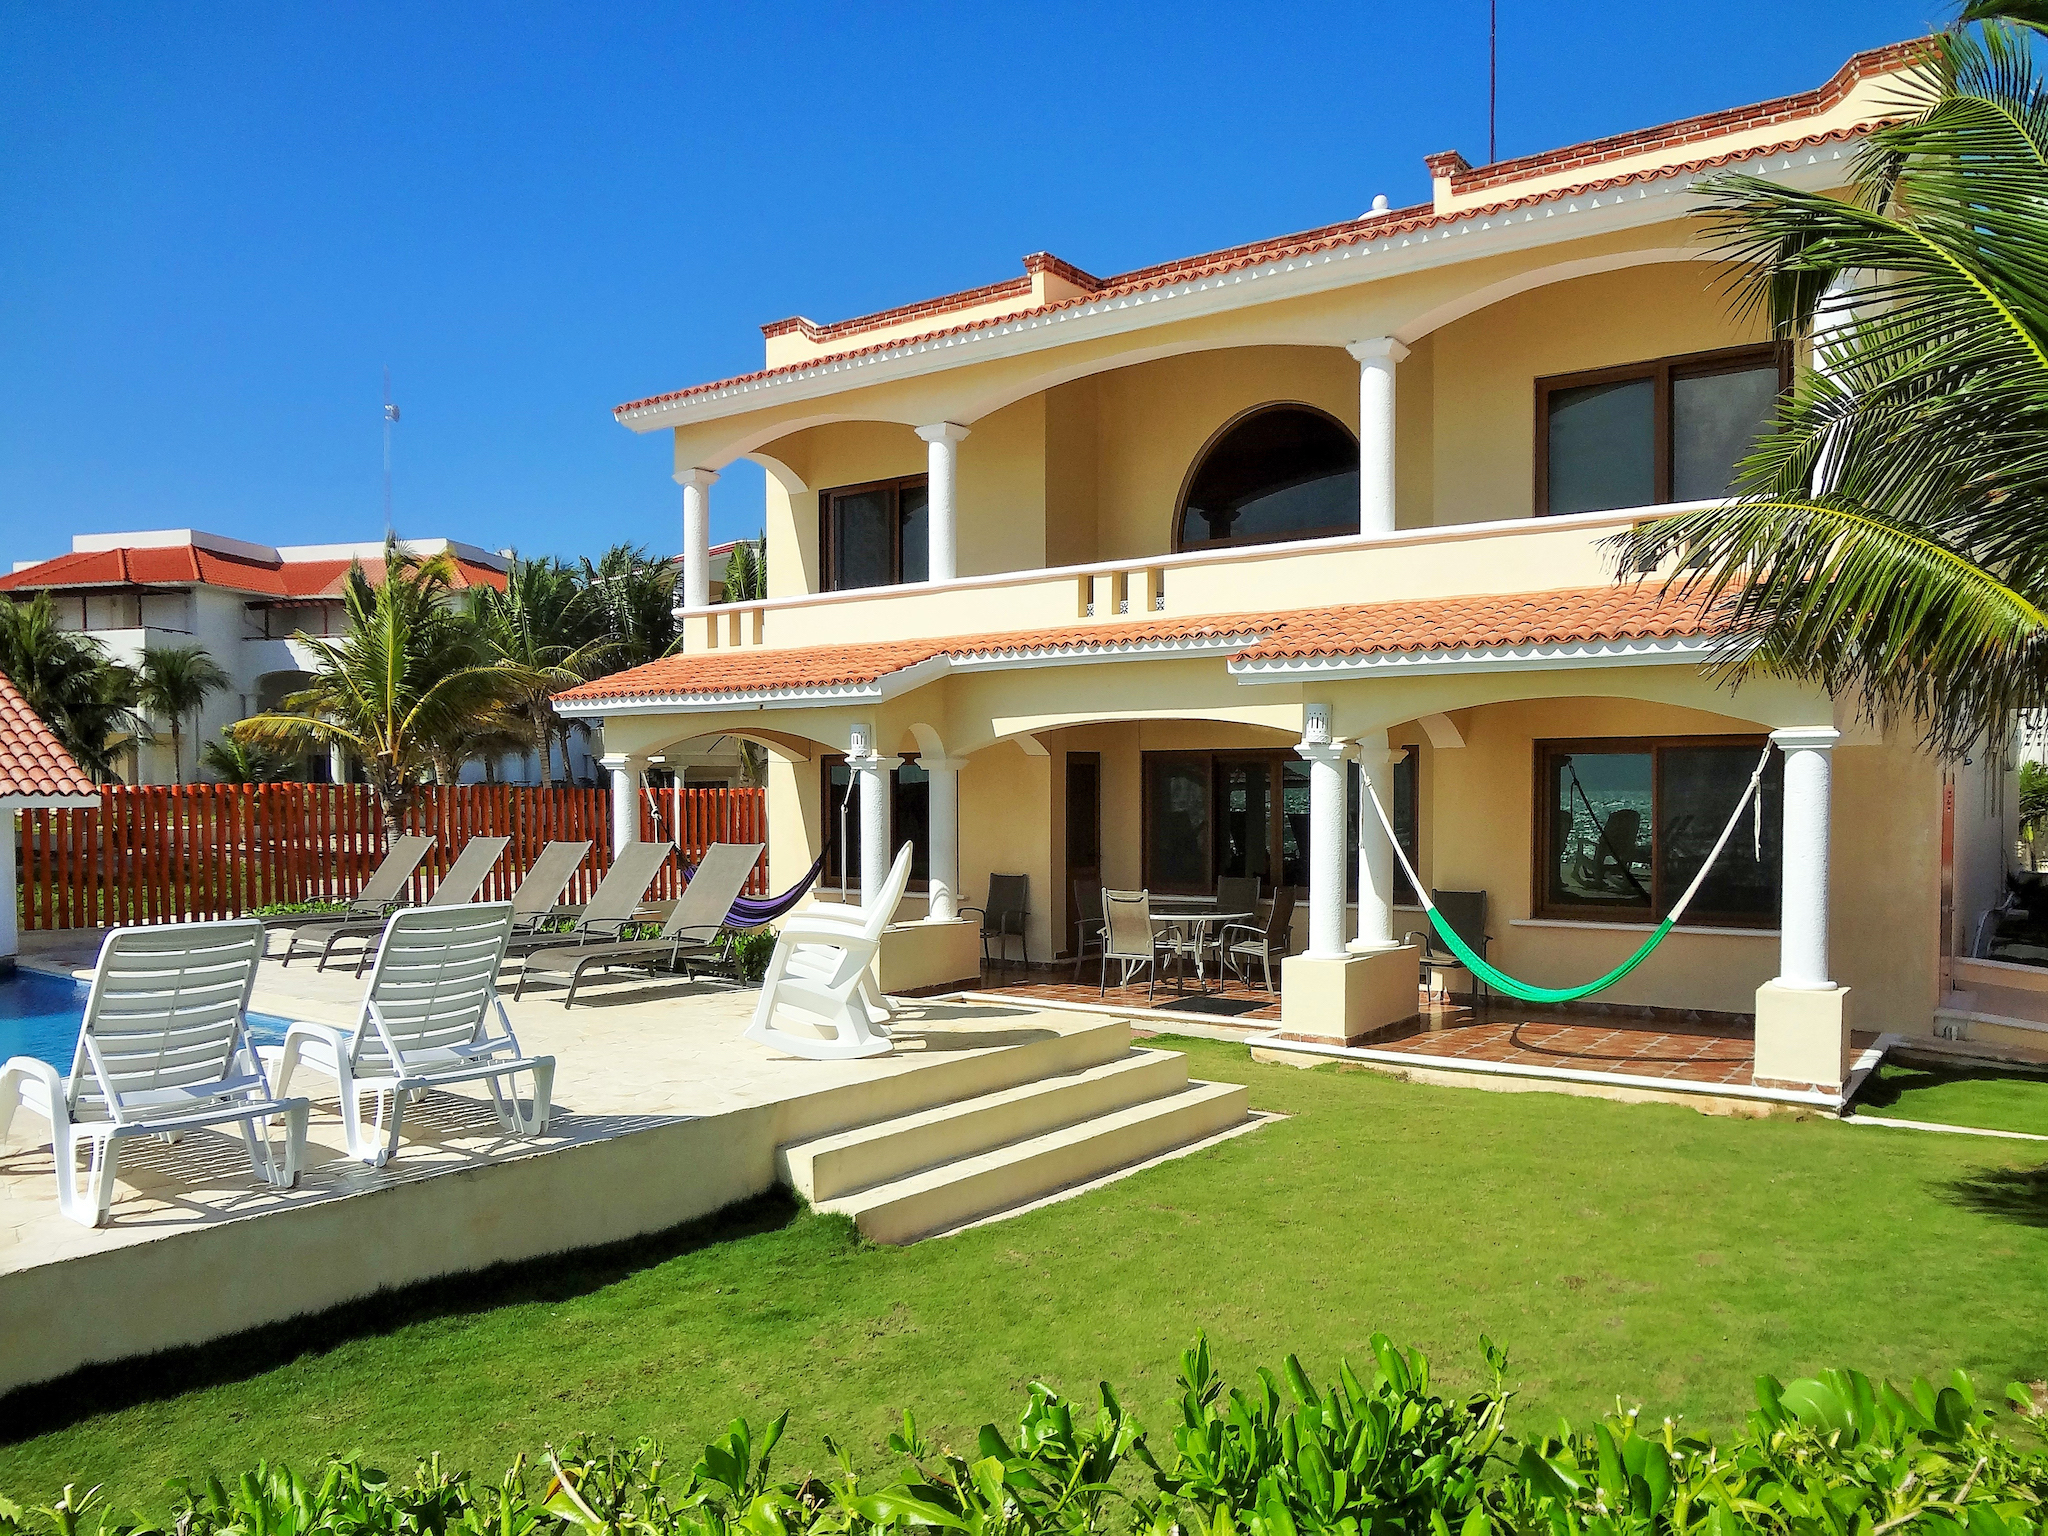 Vacation Rentals Cancun Mexico